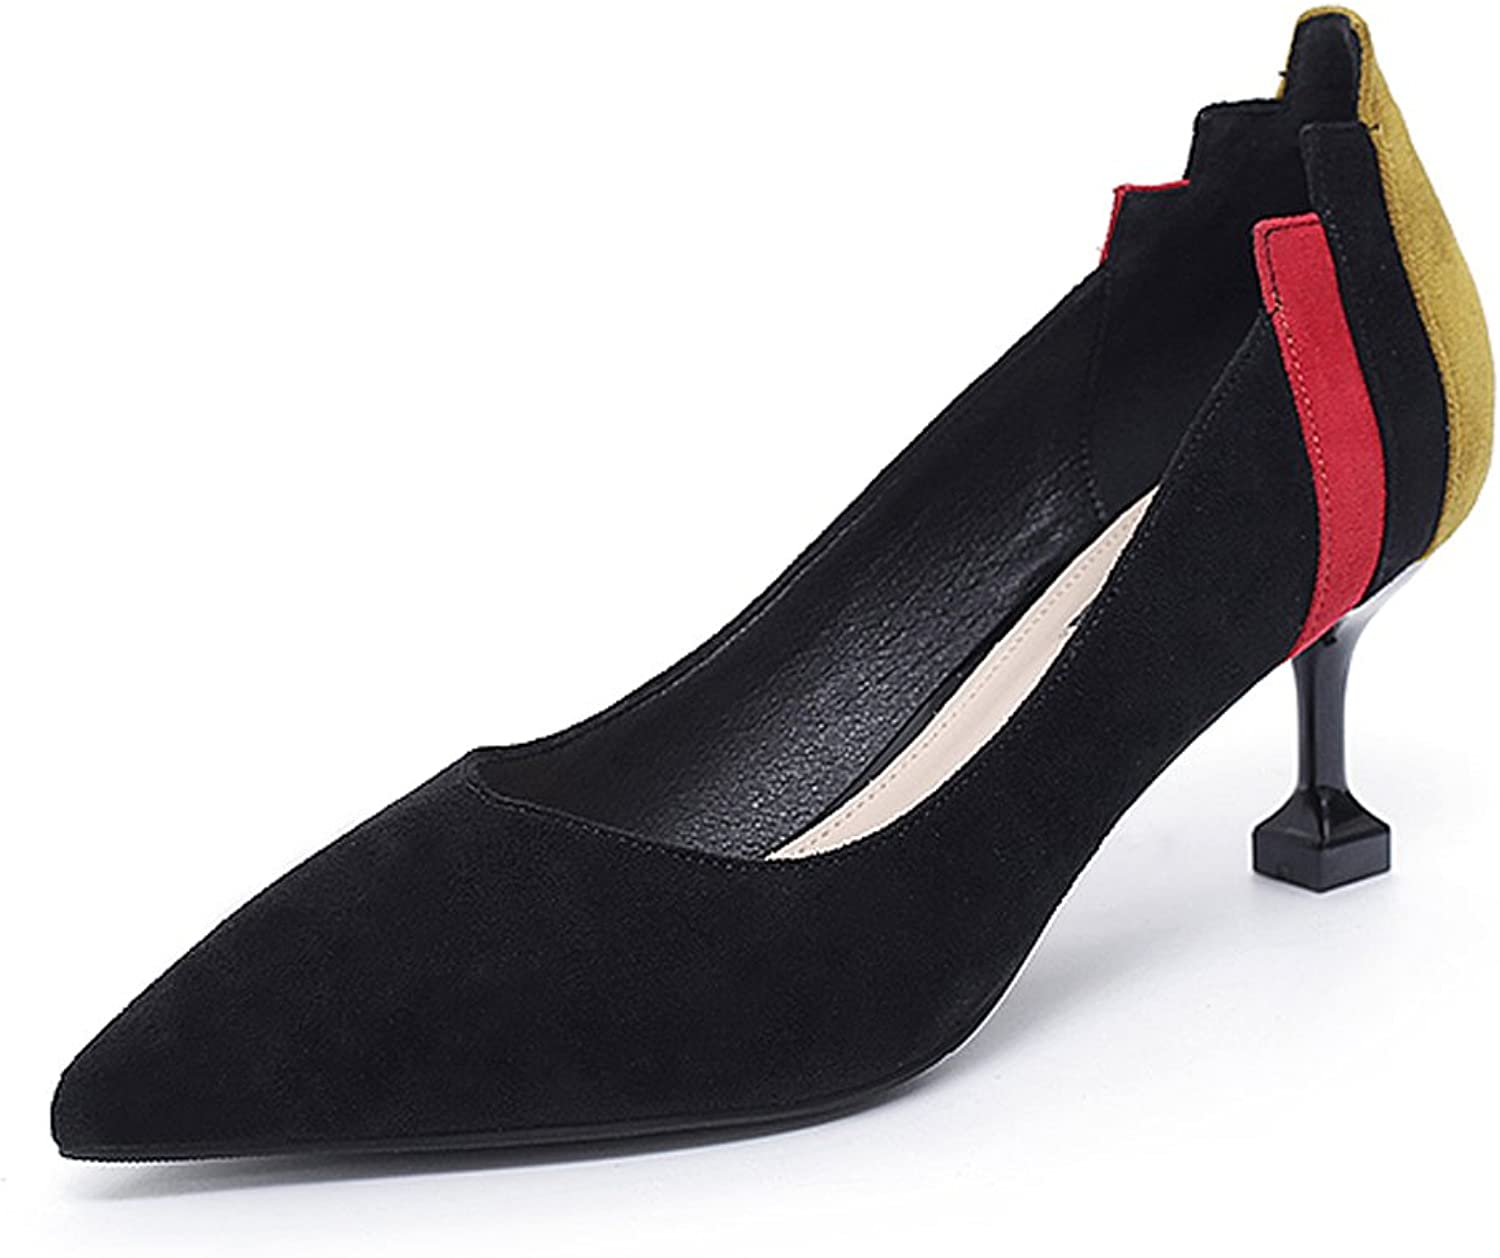 Women's high heels spring and autumn black thin shoes